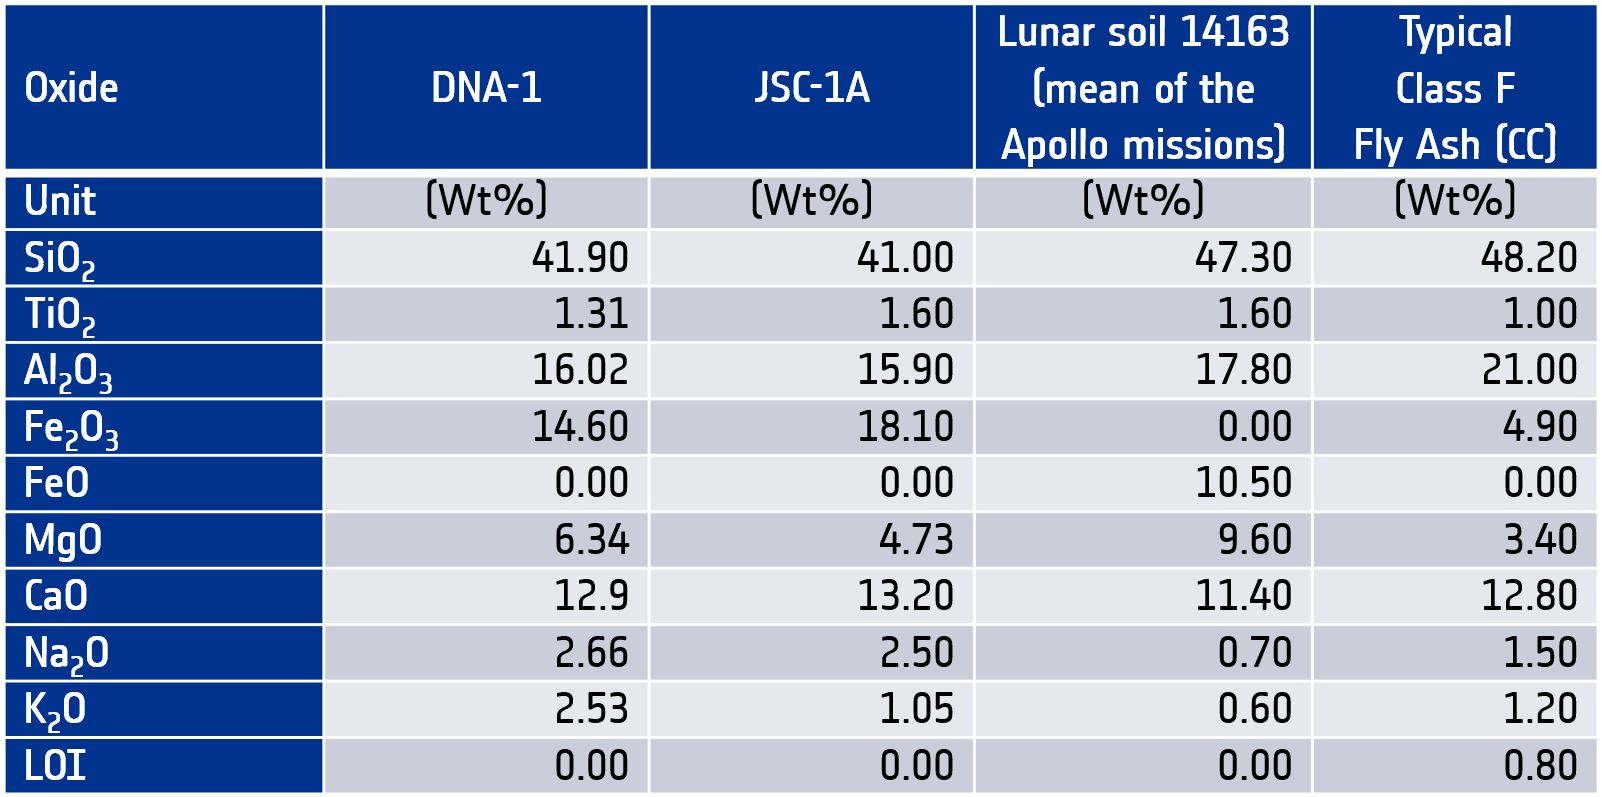 Table 1: Main oxides in DNA-1, JSC-1A, lunar soil samples from Apollo missions and typical Class F fly ash (Haskin and Warren, 1991), (Aughenbaugh et al., 2016).